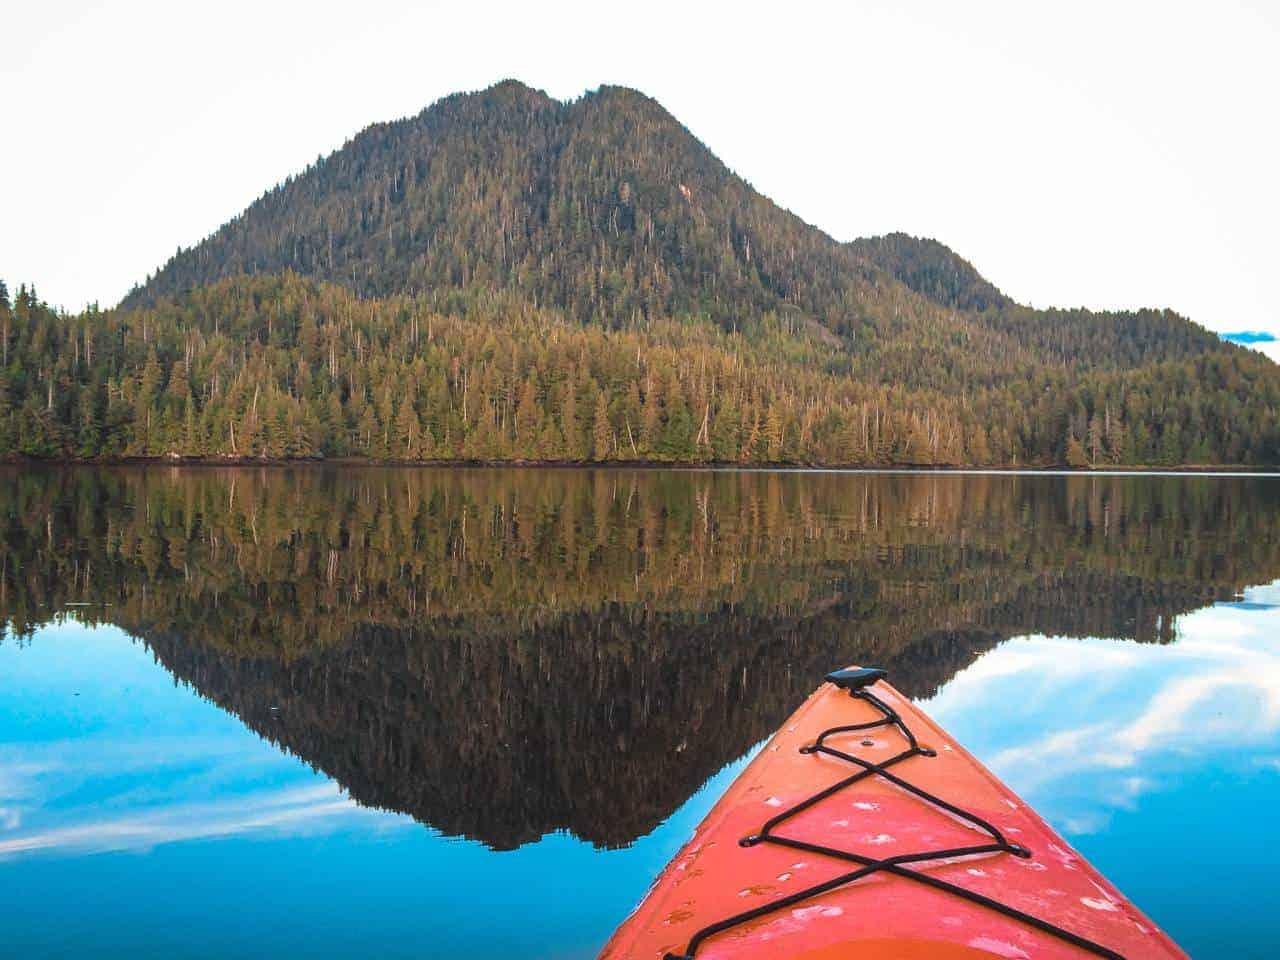 Kayaking in Prince Rupert Canada